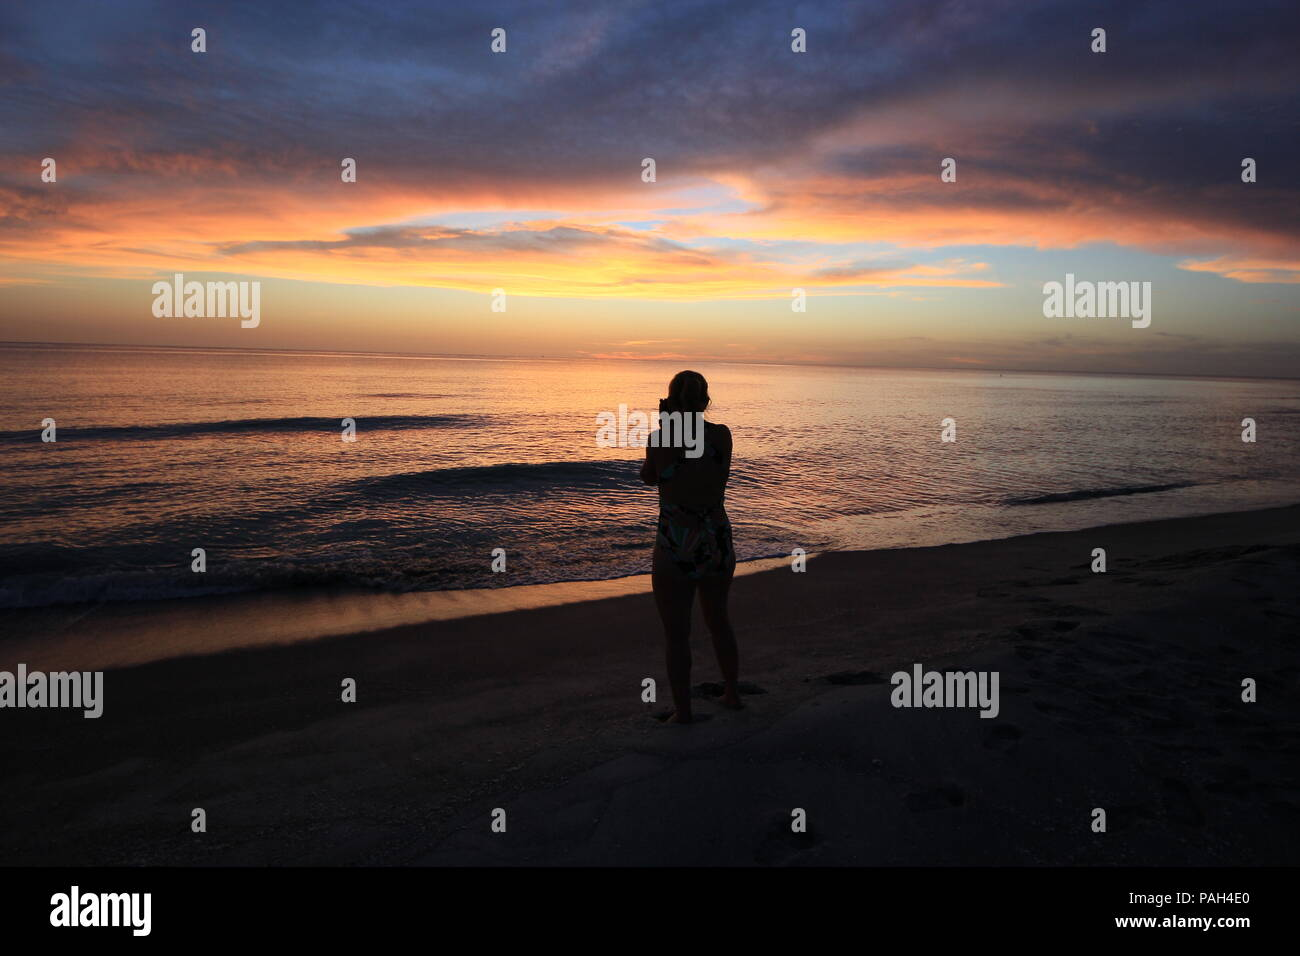 Woman in silhouette photographing the sunset over the Gulf of Mexico on Captiva Island off Florida's west coast, United States. Stock Photo